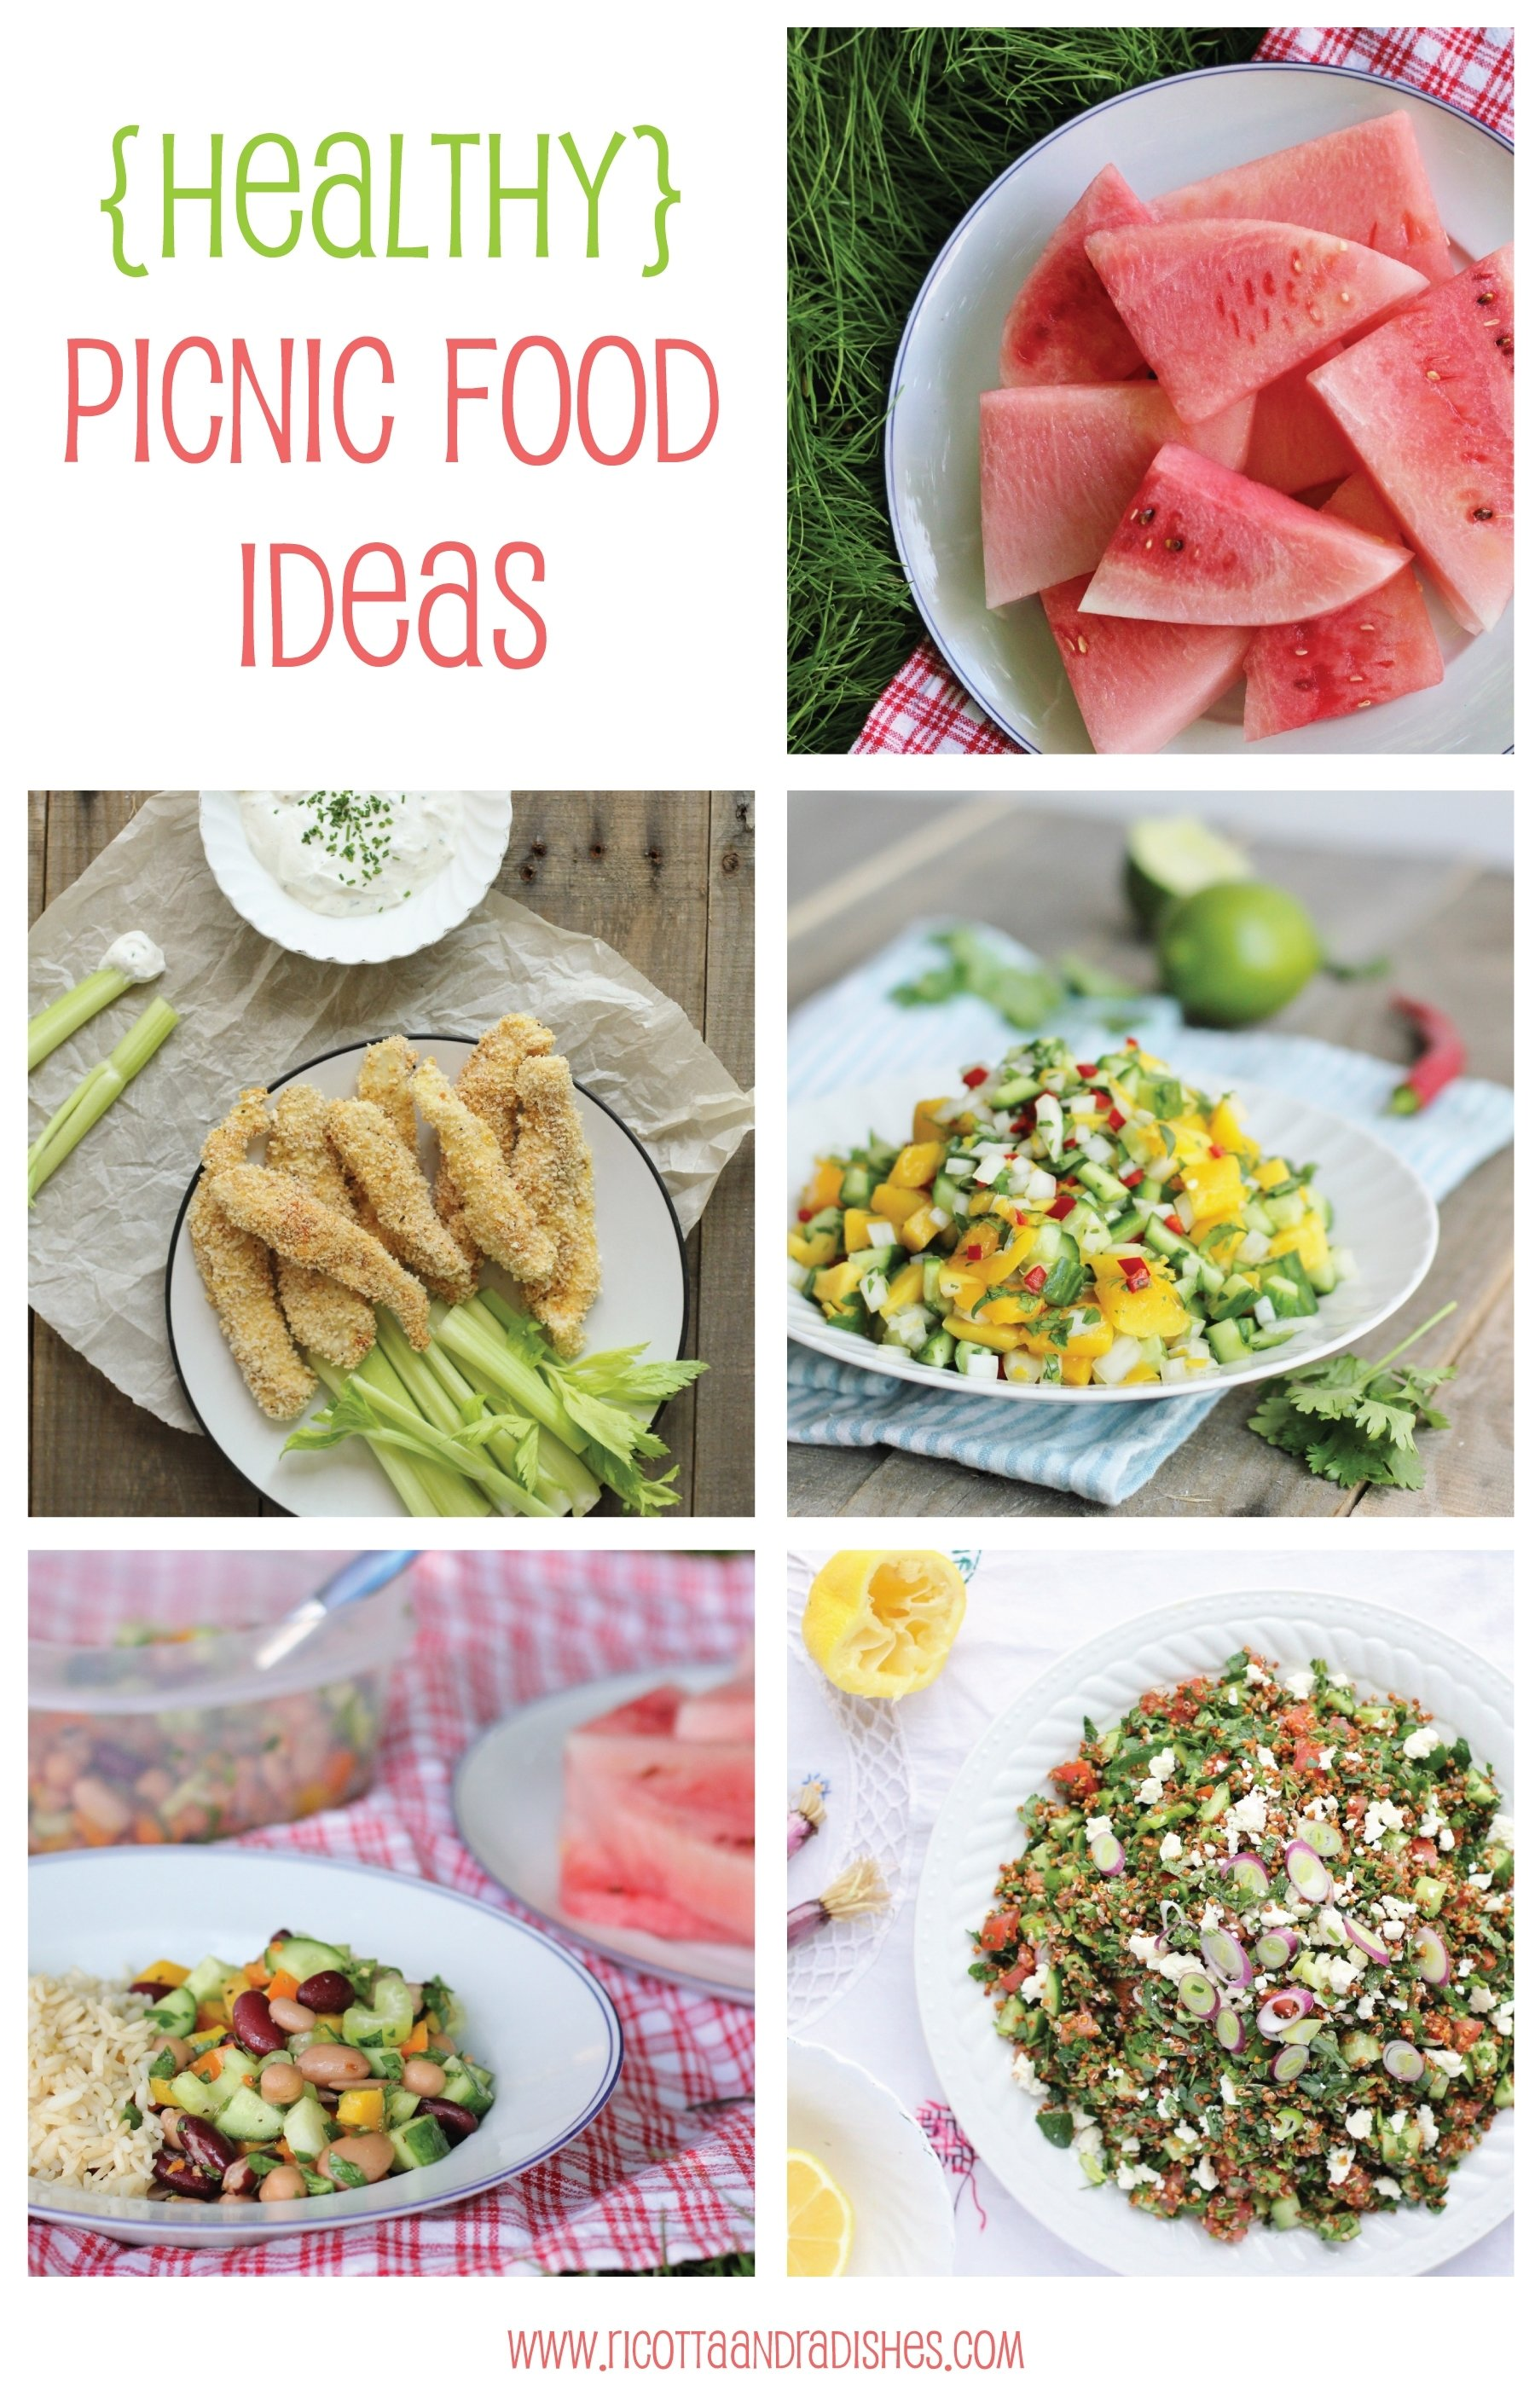 10 Gorgeous Picnic Food Ideas For Two healthy picnic food ideas 1 2020